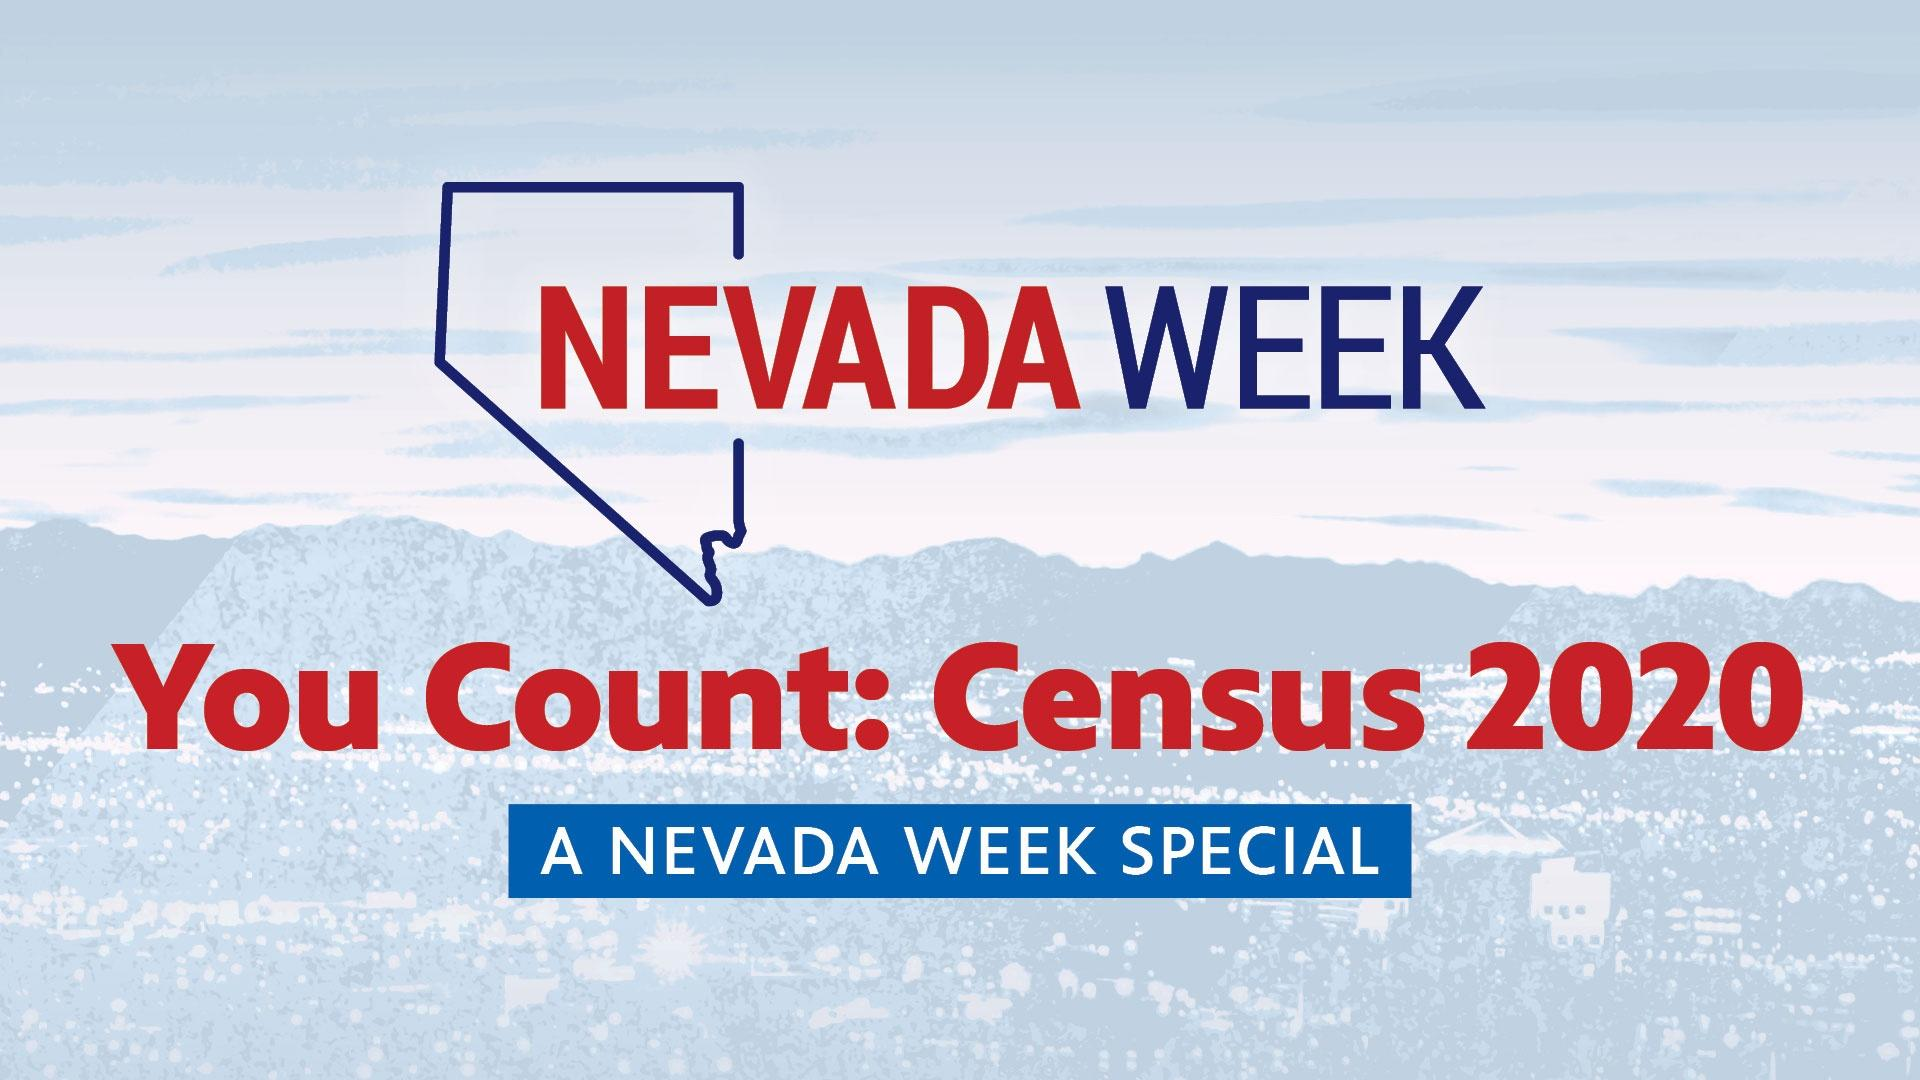 You Count: Census 2020 | Nevada Week